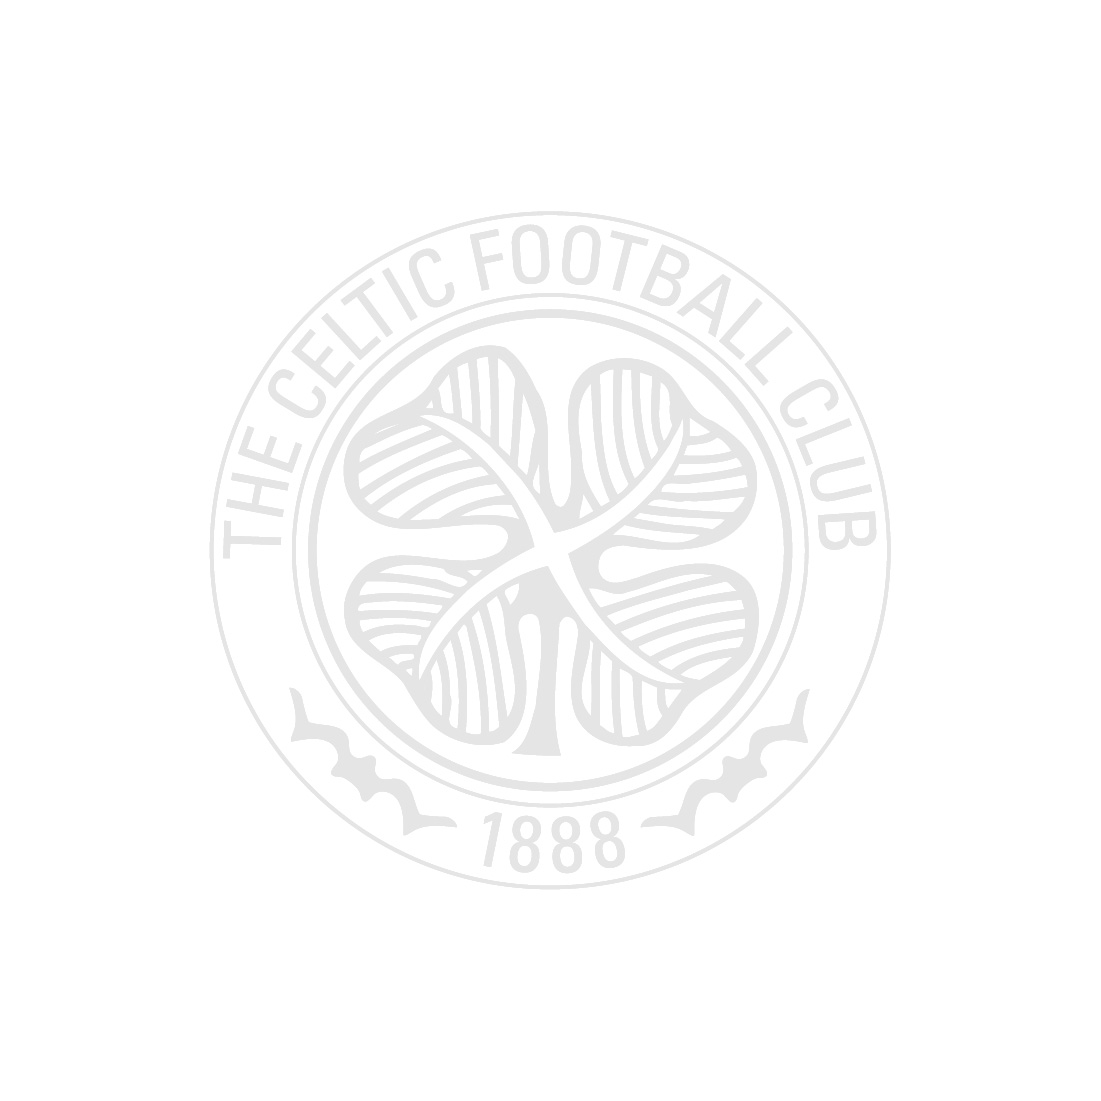 Celtic Invincibles Re-usuable Tote Bag